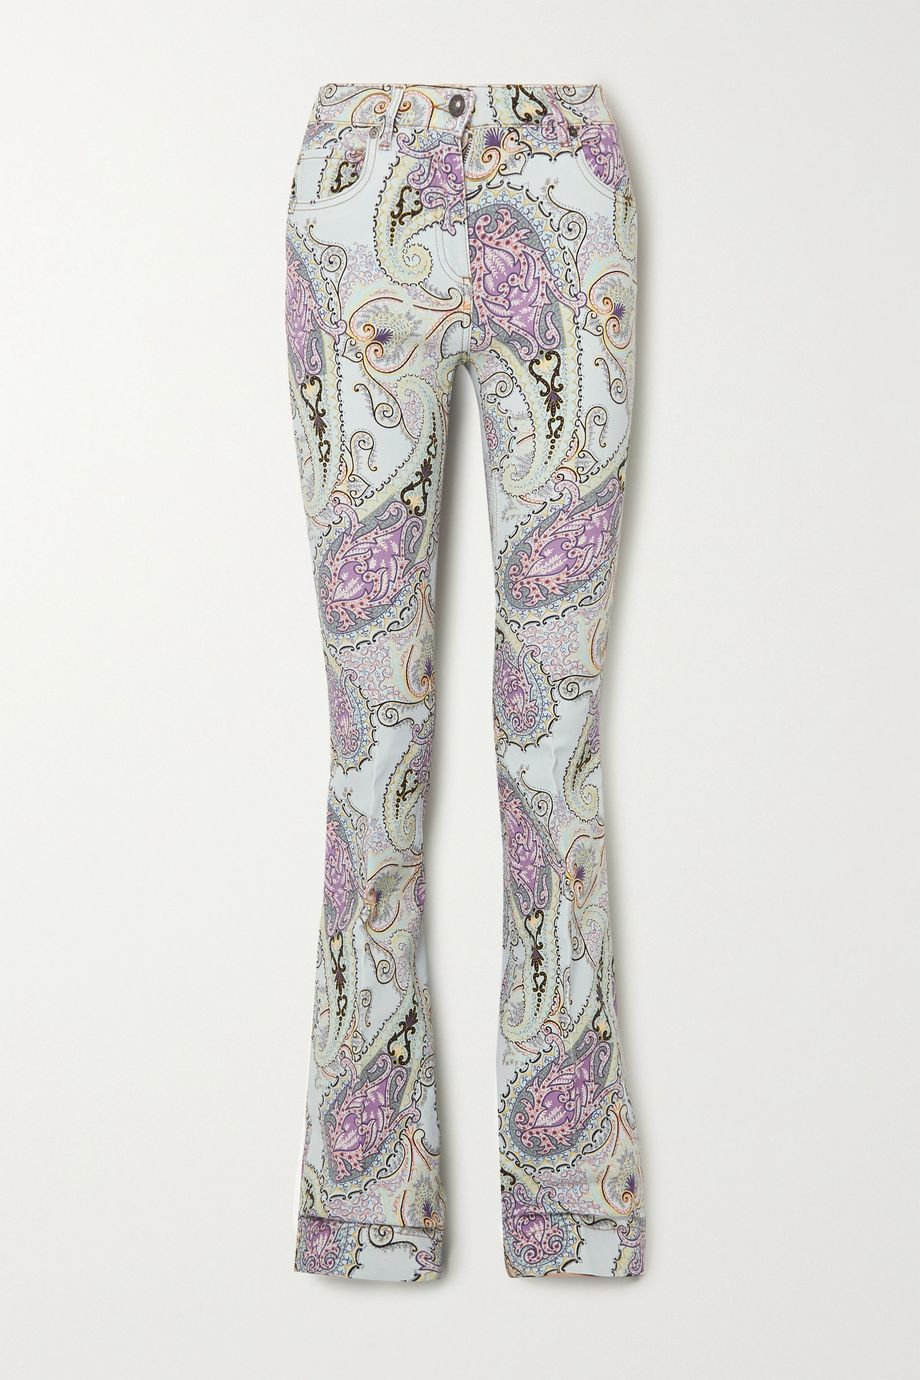 Etro Paisley-print high-rise flared jeans